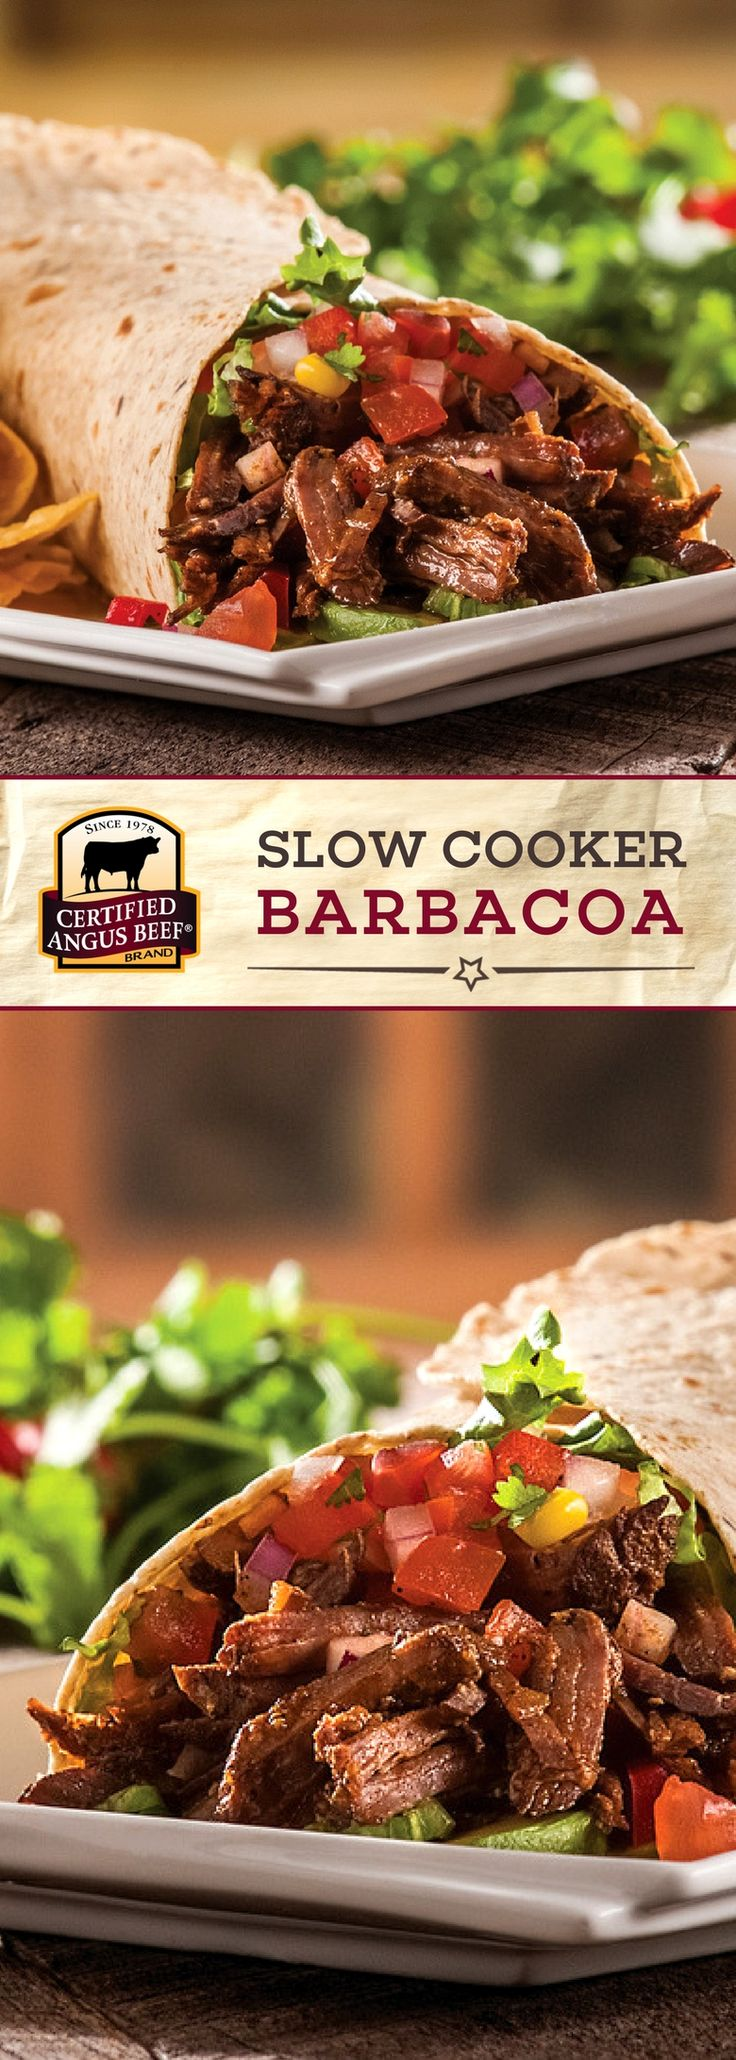 Certified Angus Beef®️ brand Slow Cooker Barbacoa is an EASY recipe that you can make in your SLOW cooker with delicious shoulder roast! Cinnamon, allspice, cumin, oregano and coffee make this a FRAGRANT and deeply flavorful beef recipe!   #bestangusbeef #certifiedangusbeef #beefrecipe #easyrecipes #tacotuesday